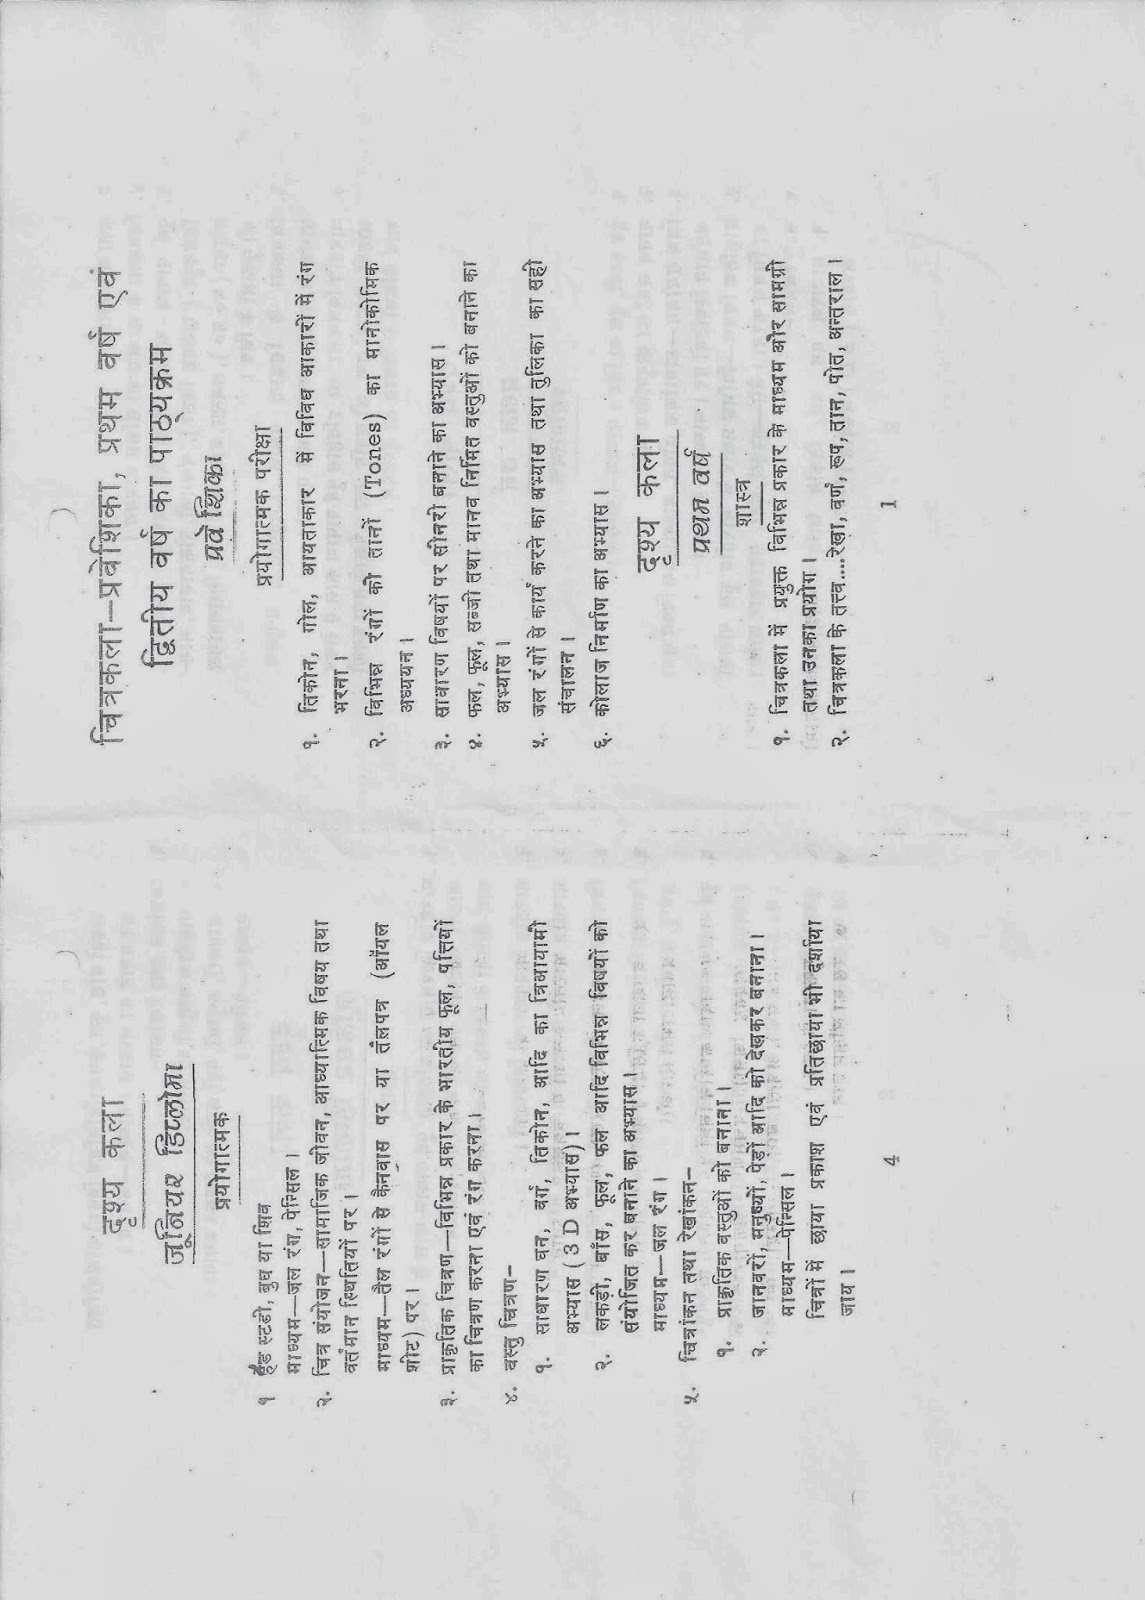 Old Question Papers of Music Examination: Prayag Sangeet